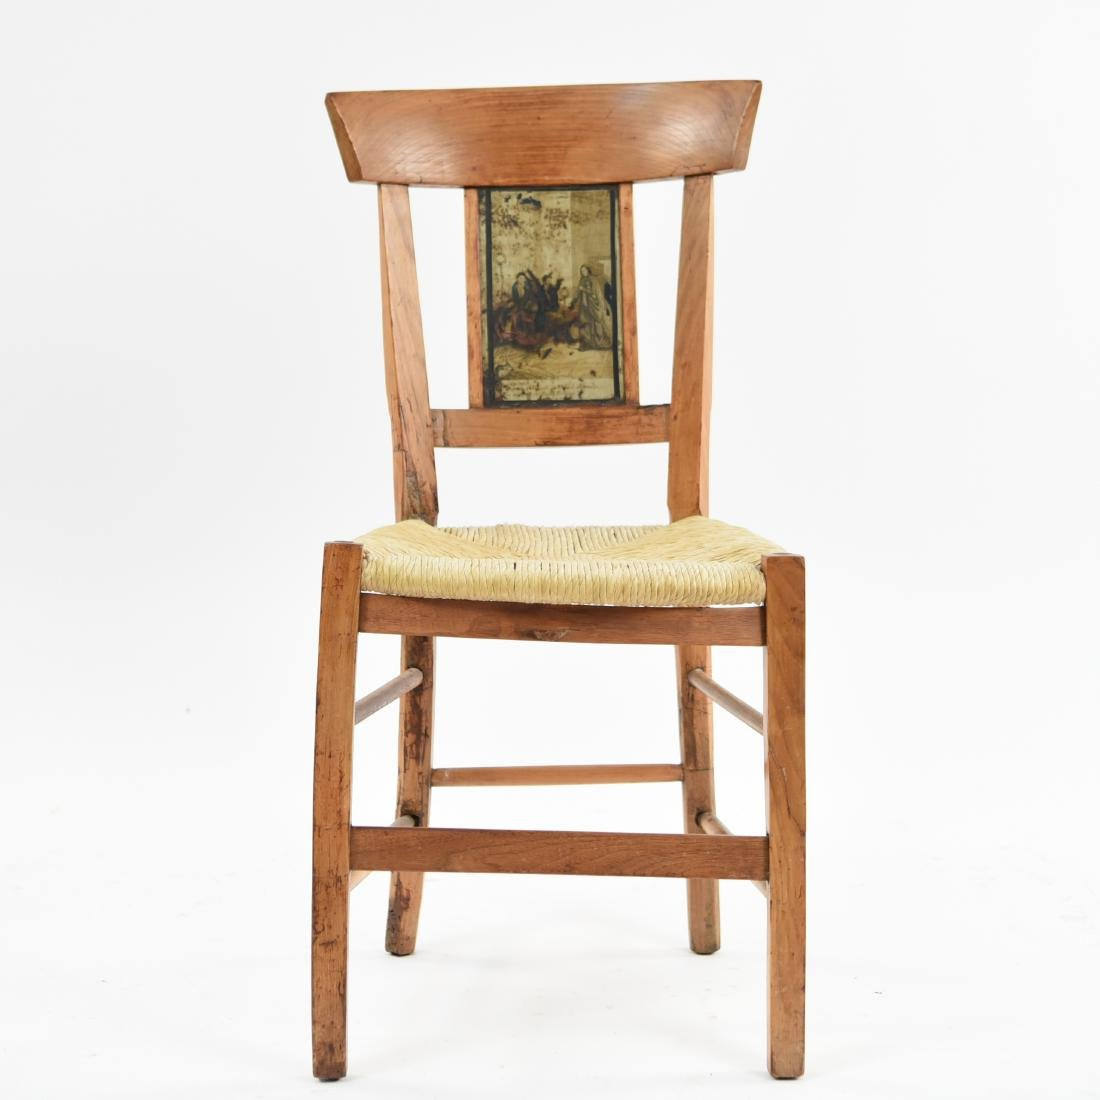 19TH C. PAINT DECORATED SIDE CHAIR - 2